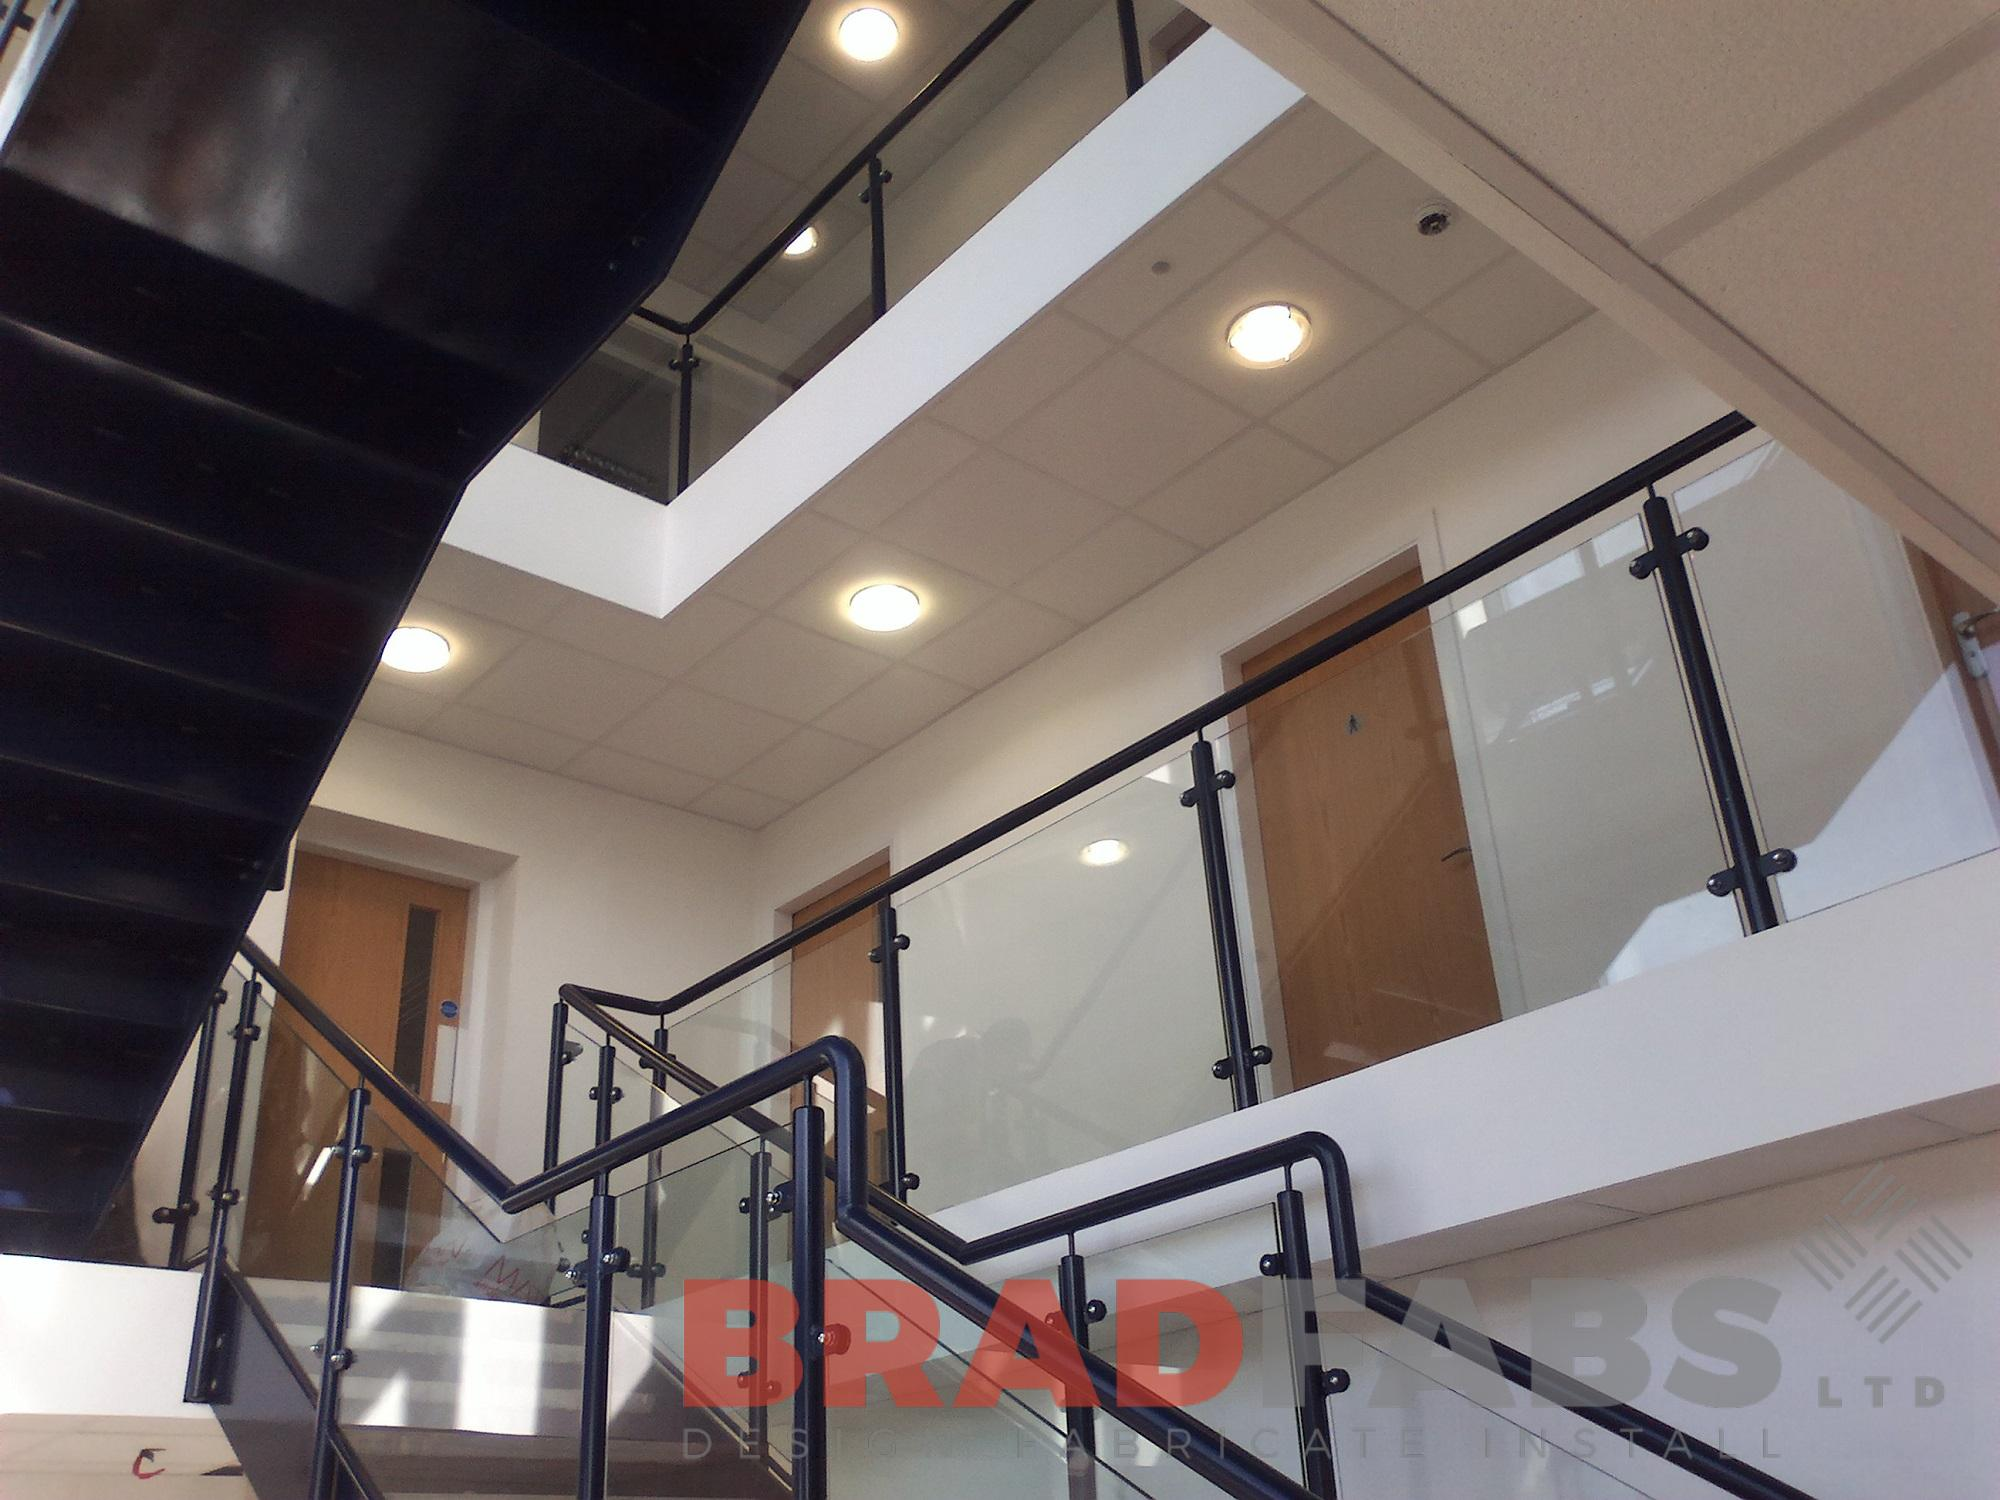 Glass infill pannels with mild steel and powder coated balustrade and handrail